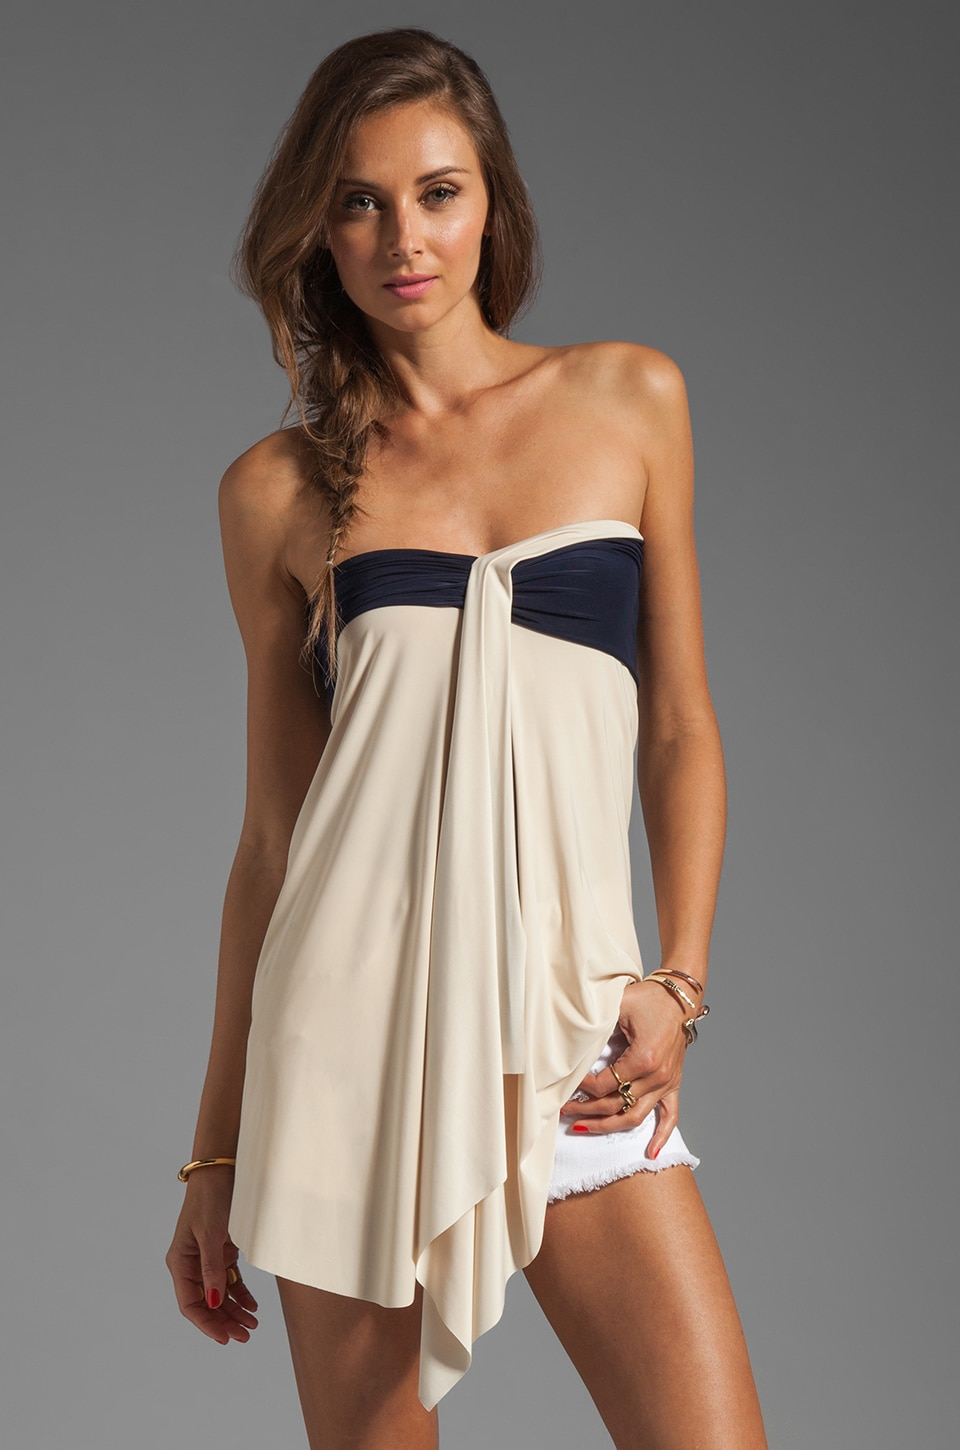 T-Bags LosAngeles Strapless Top in Cream